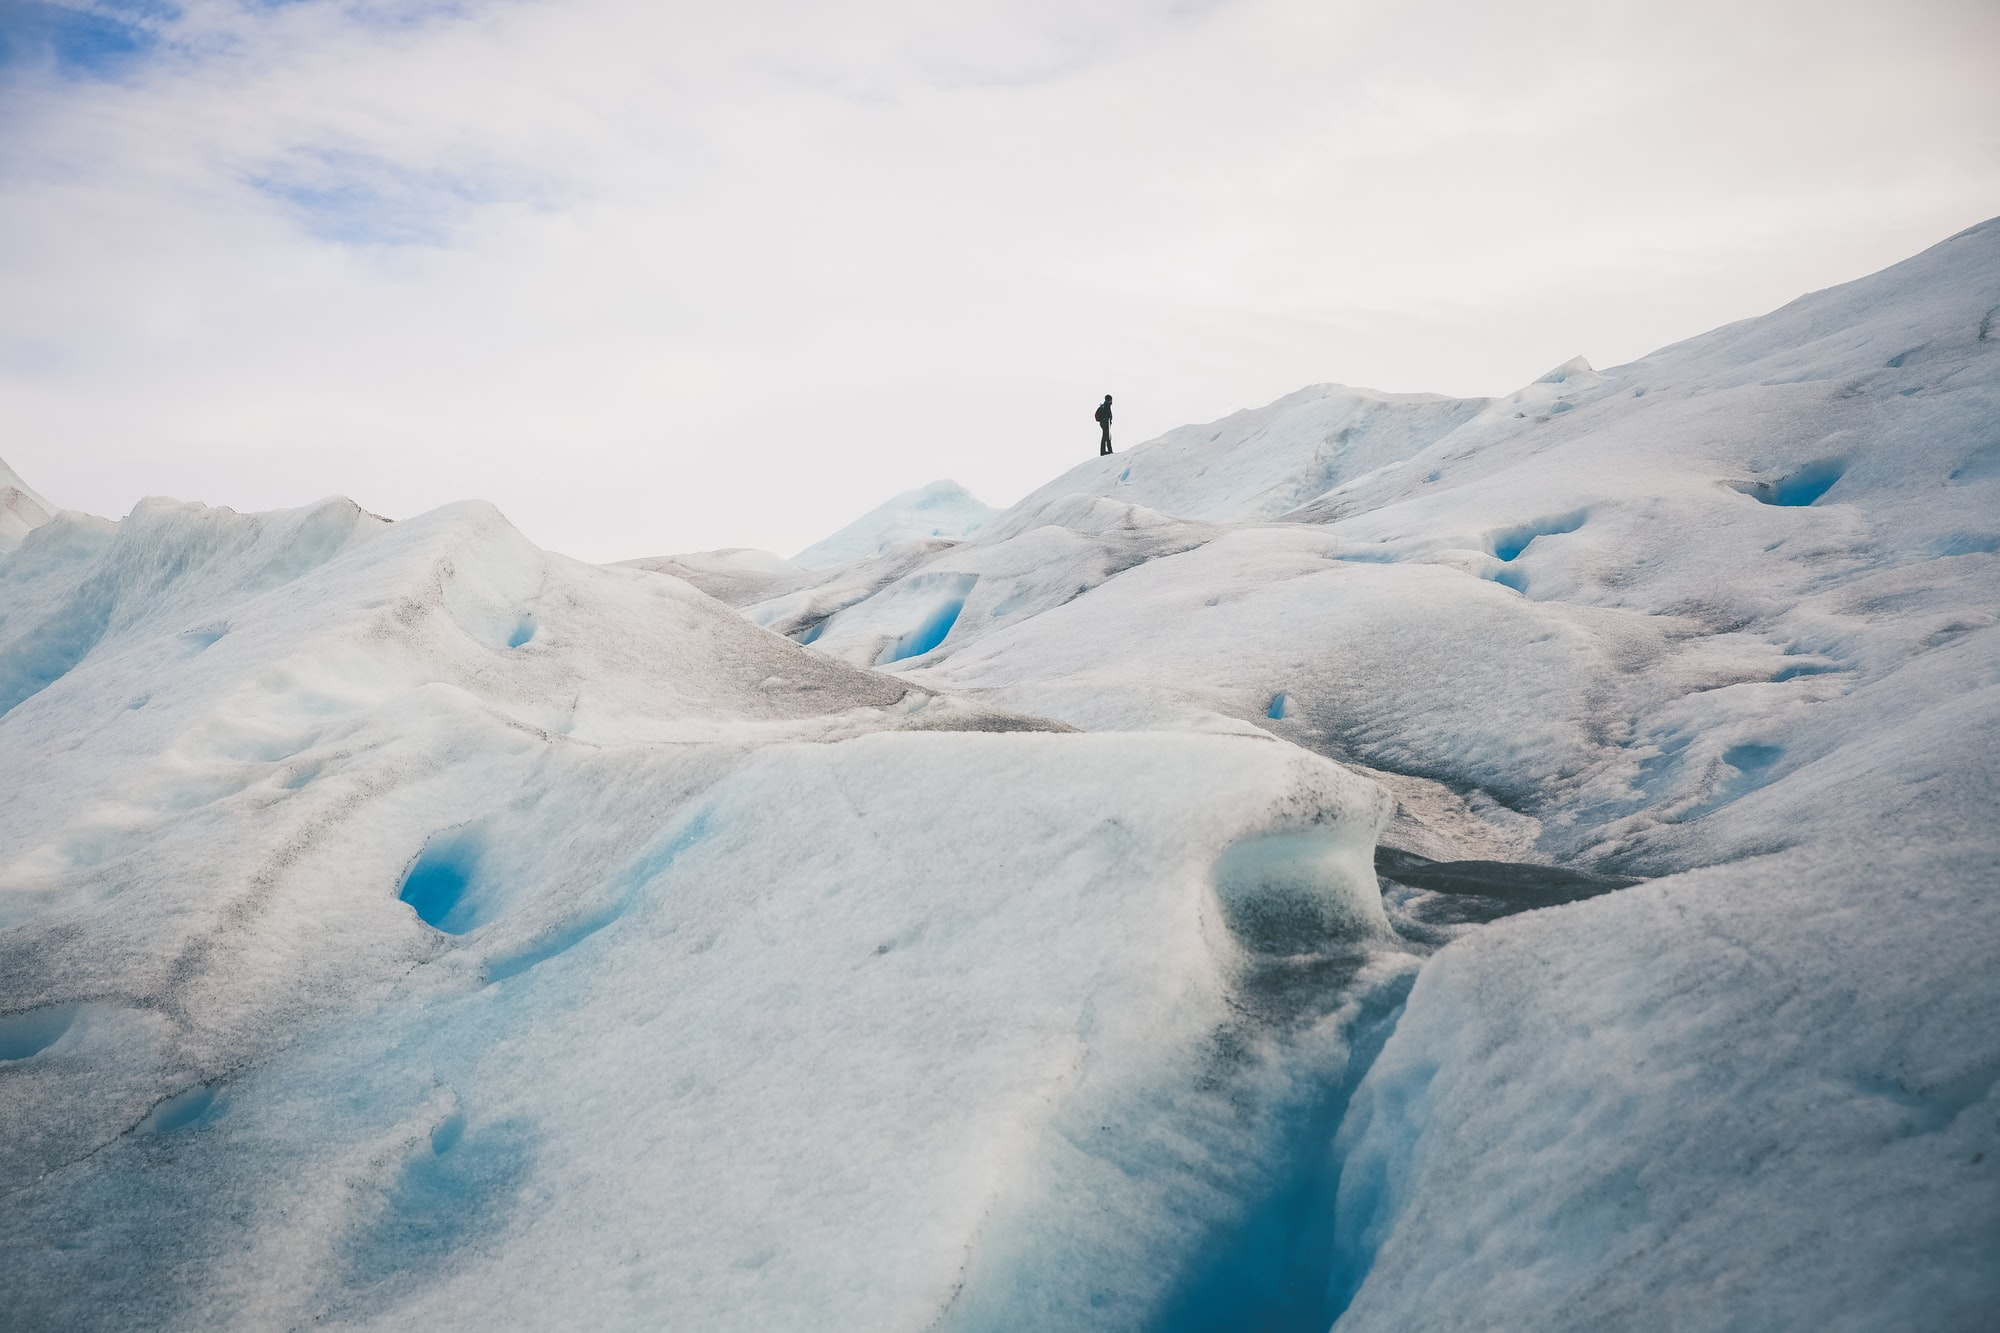 Tour guide exploring trekking conditions on Perito Moreno glacier. Patagonia is where you feel you get the most from life.